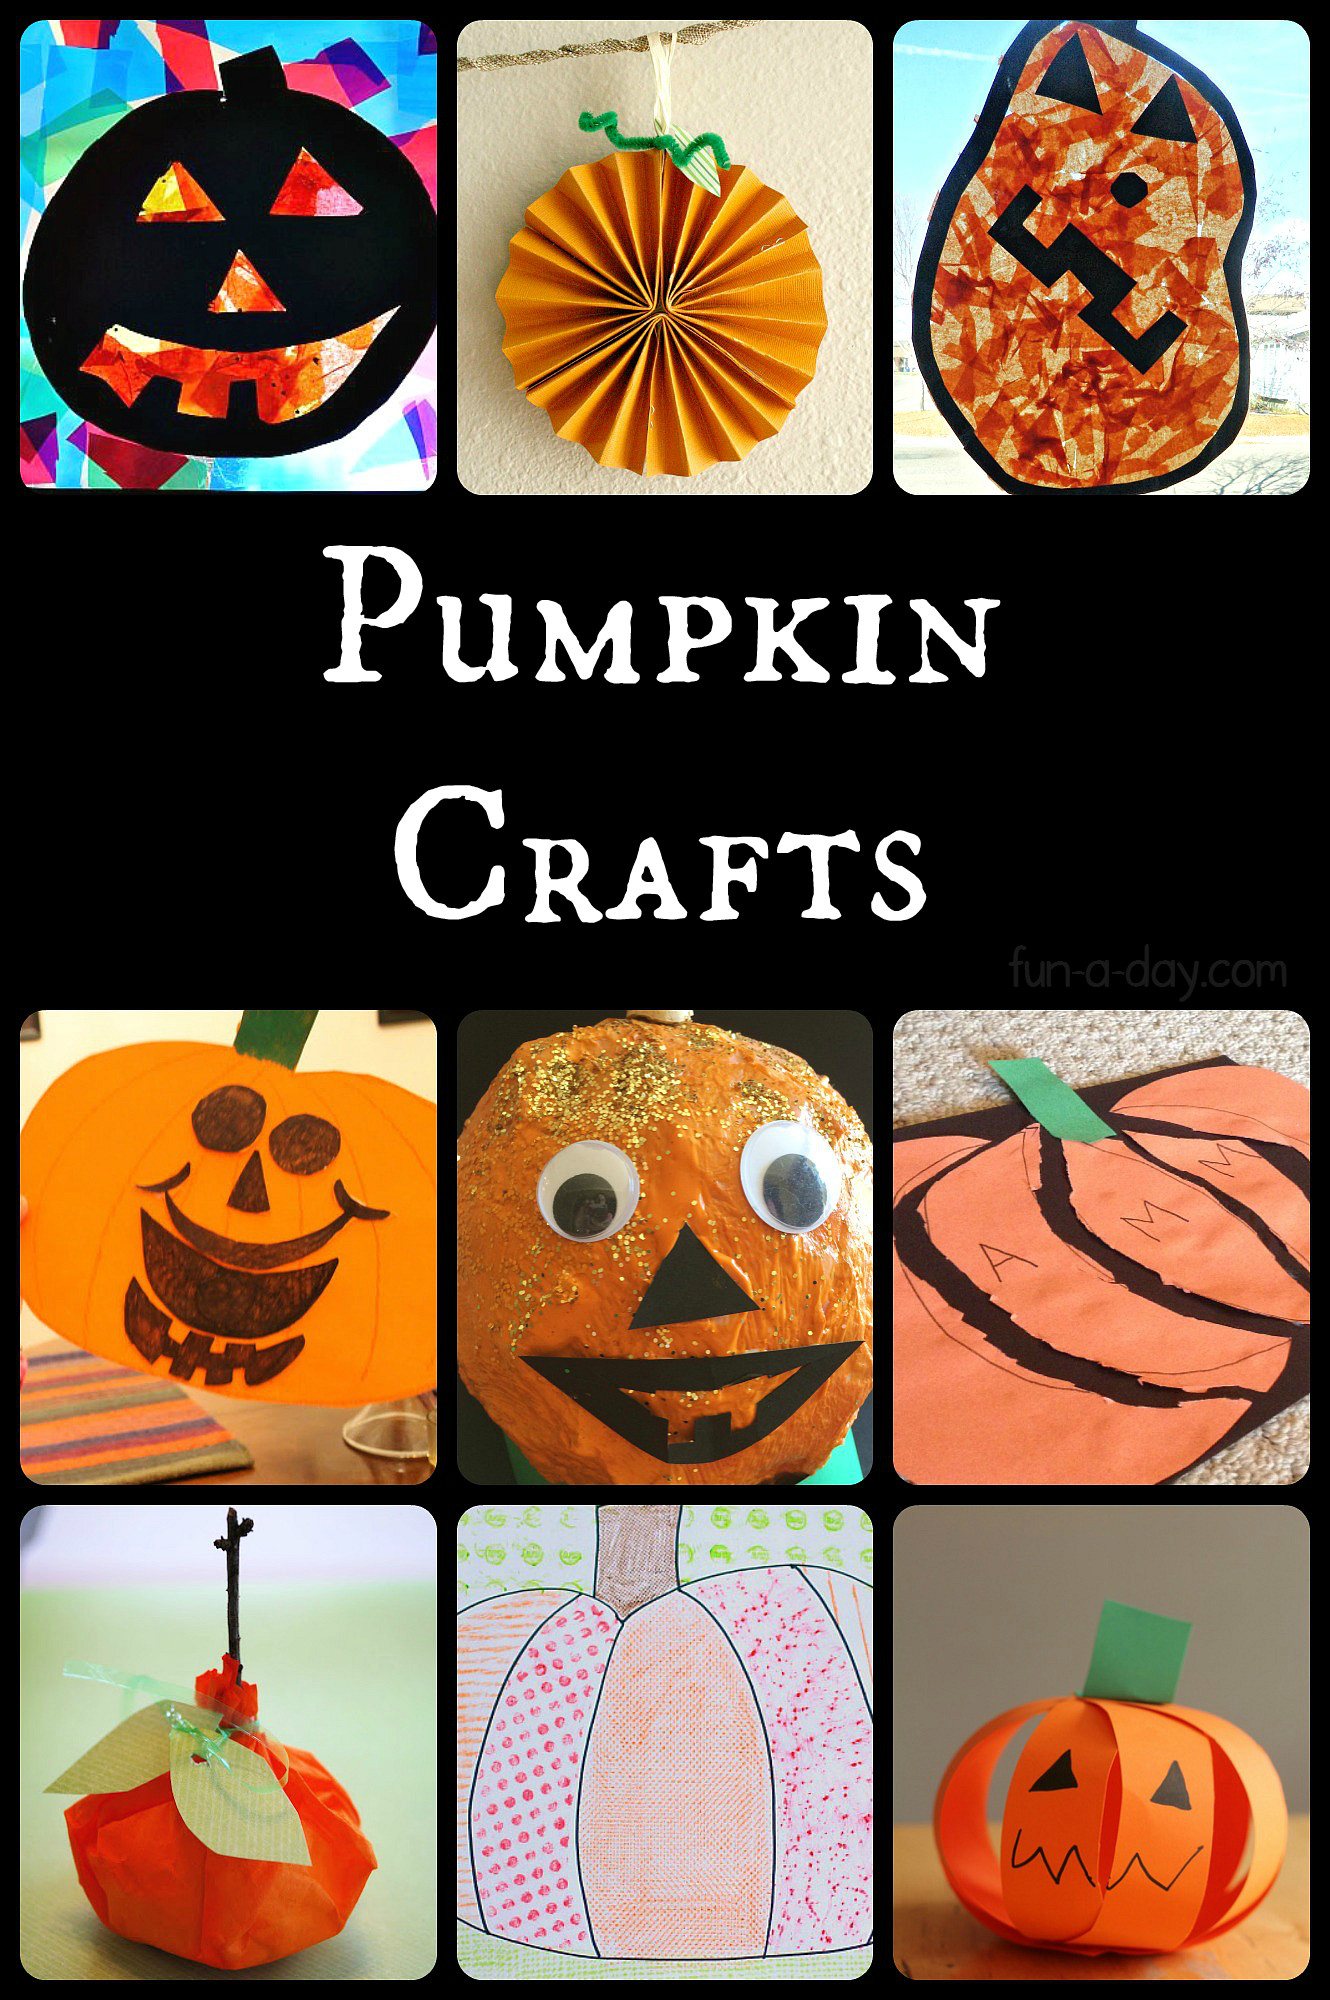 Best ideas about Fun Craft For Preschoolers . Save or Pin 15 Paper Pumpkin Crafts for Preschoolers Now.